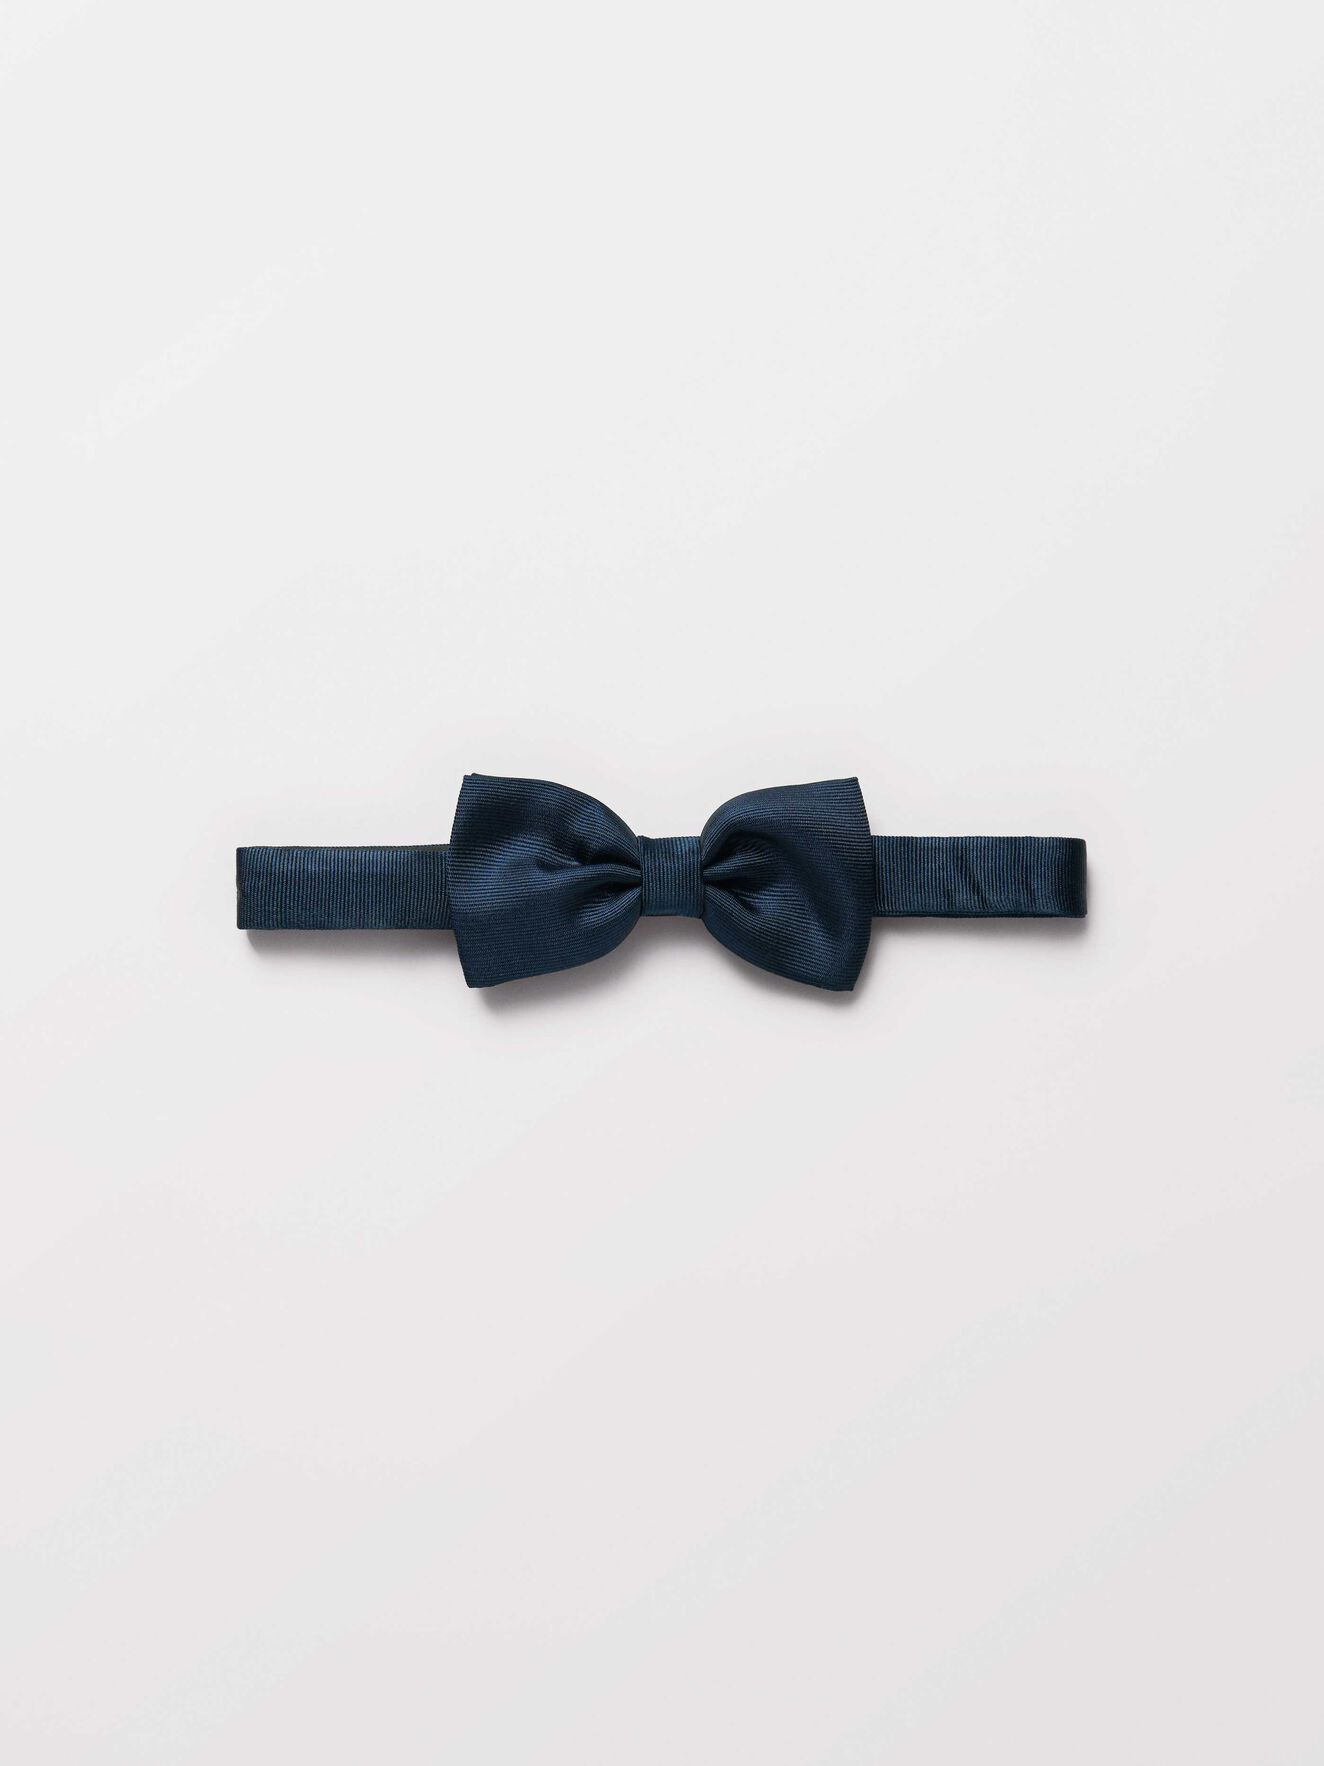 Bardel Pr Bowtie in Light Ink from Tiger of Sweden